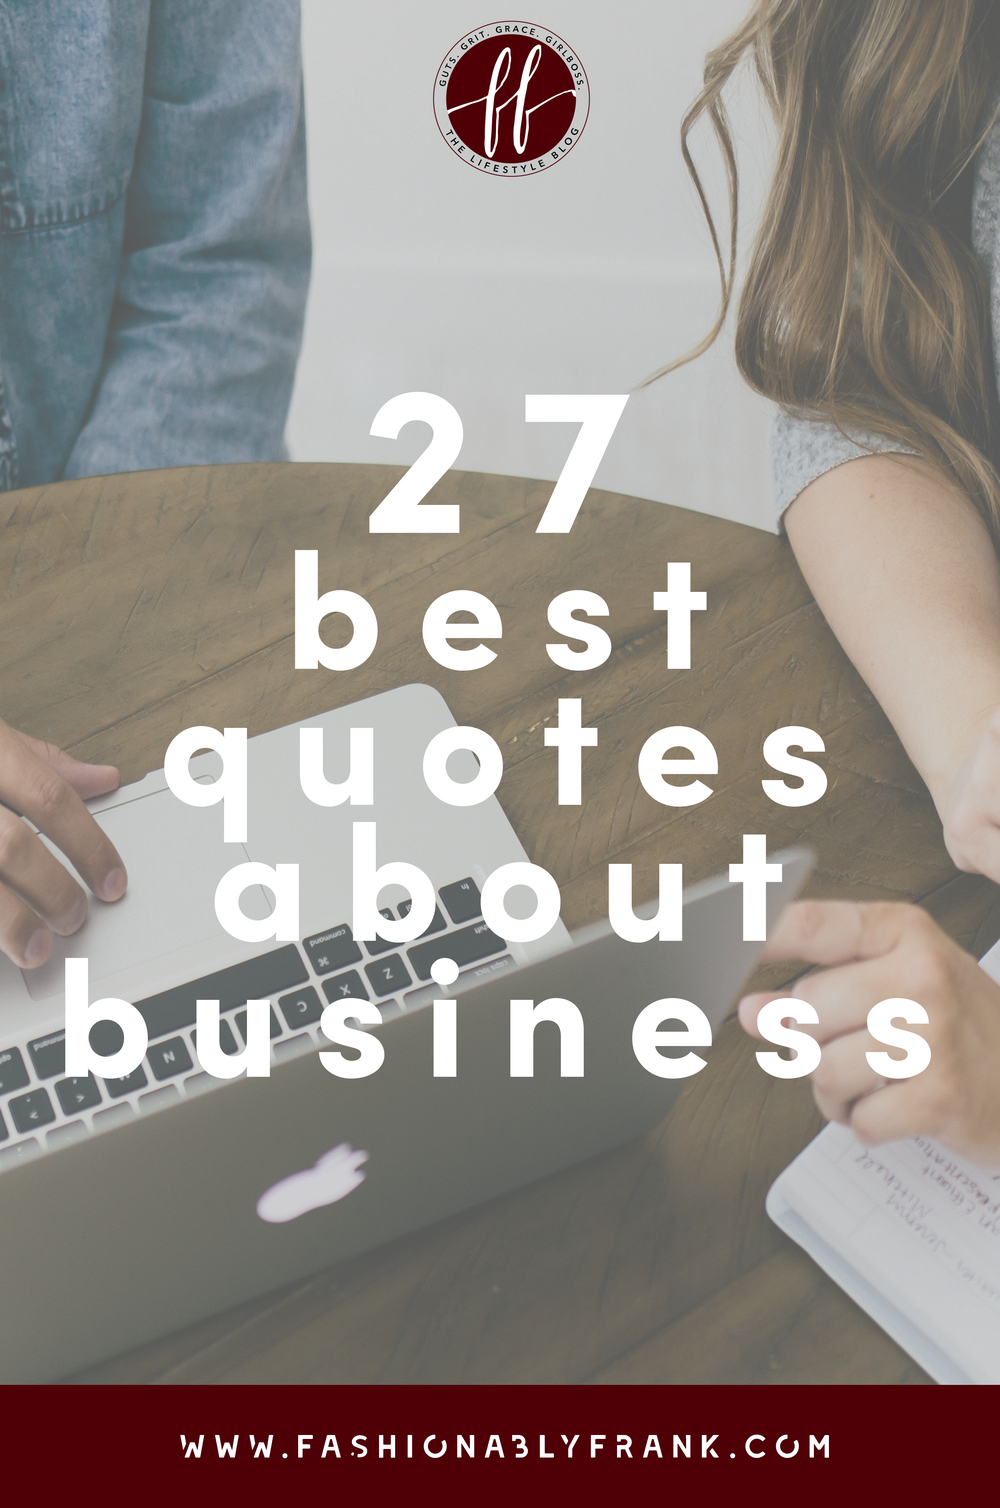 Best Quotes About Business.png